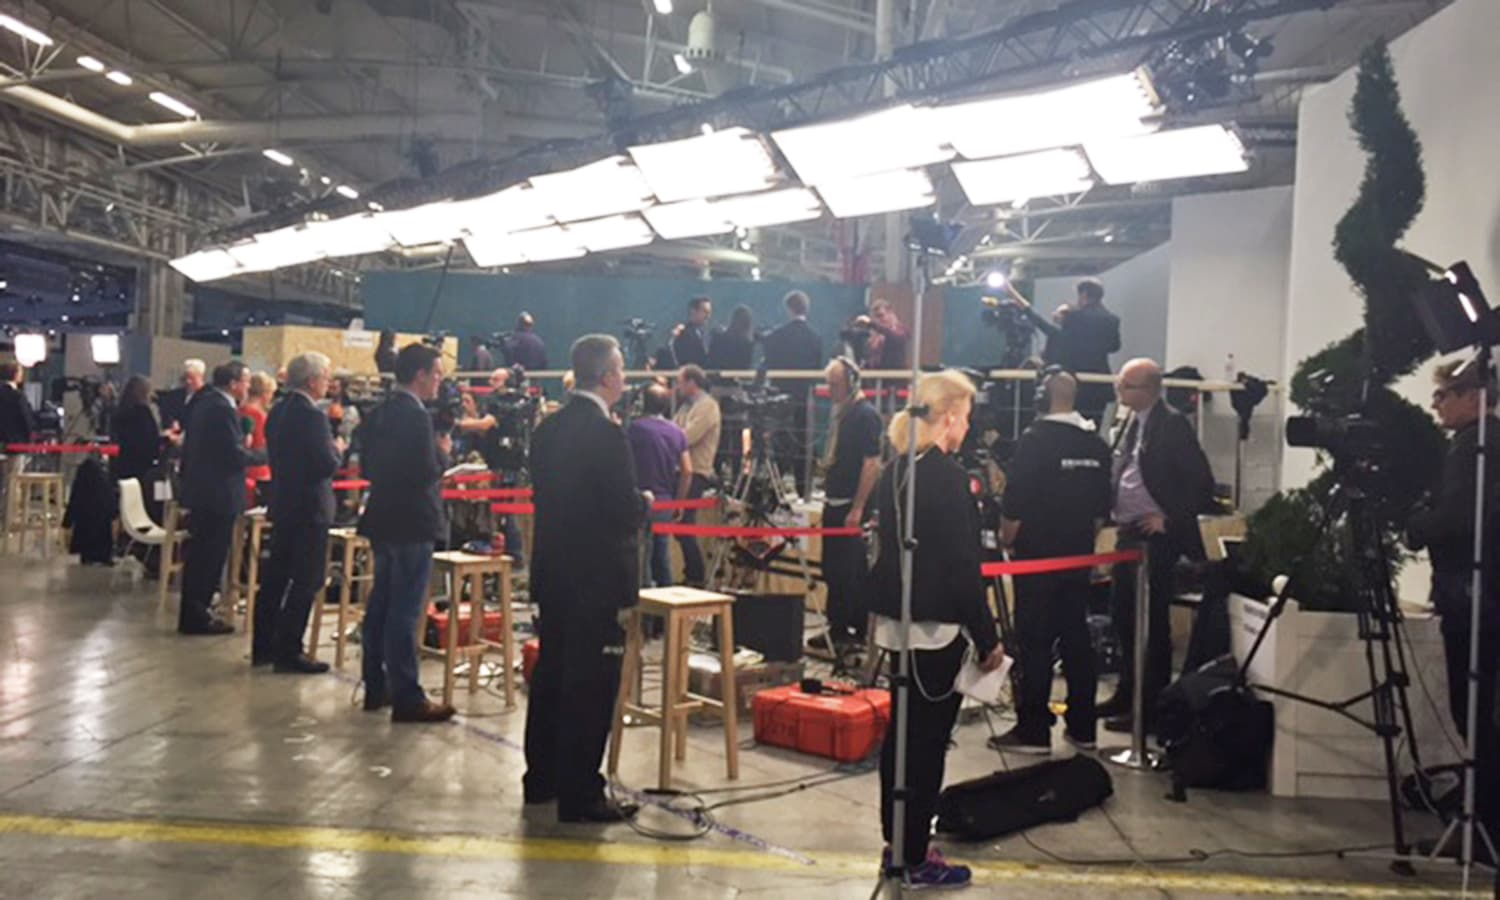 Media frenzy outside the plenary when the Paris Agreement was announced.